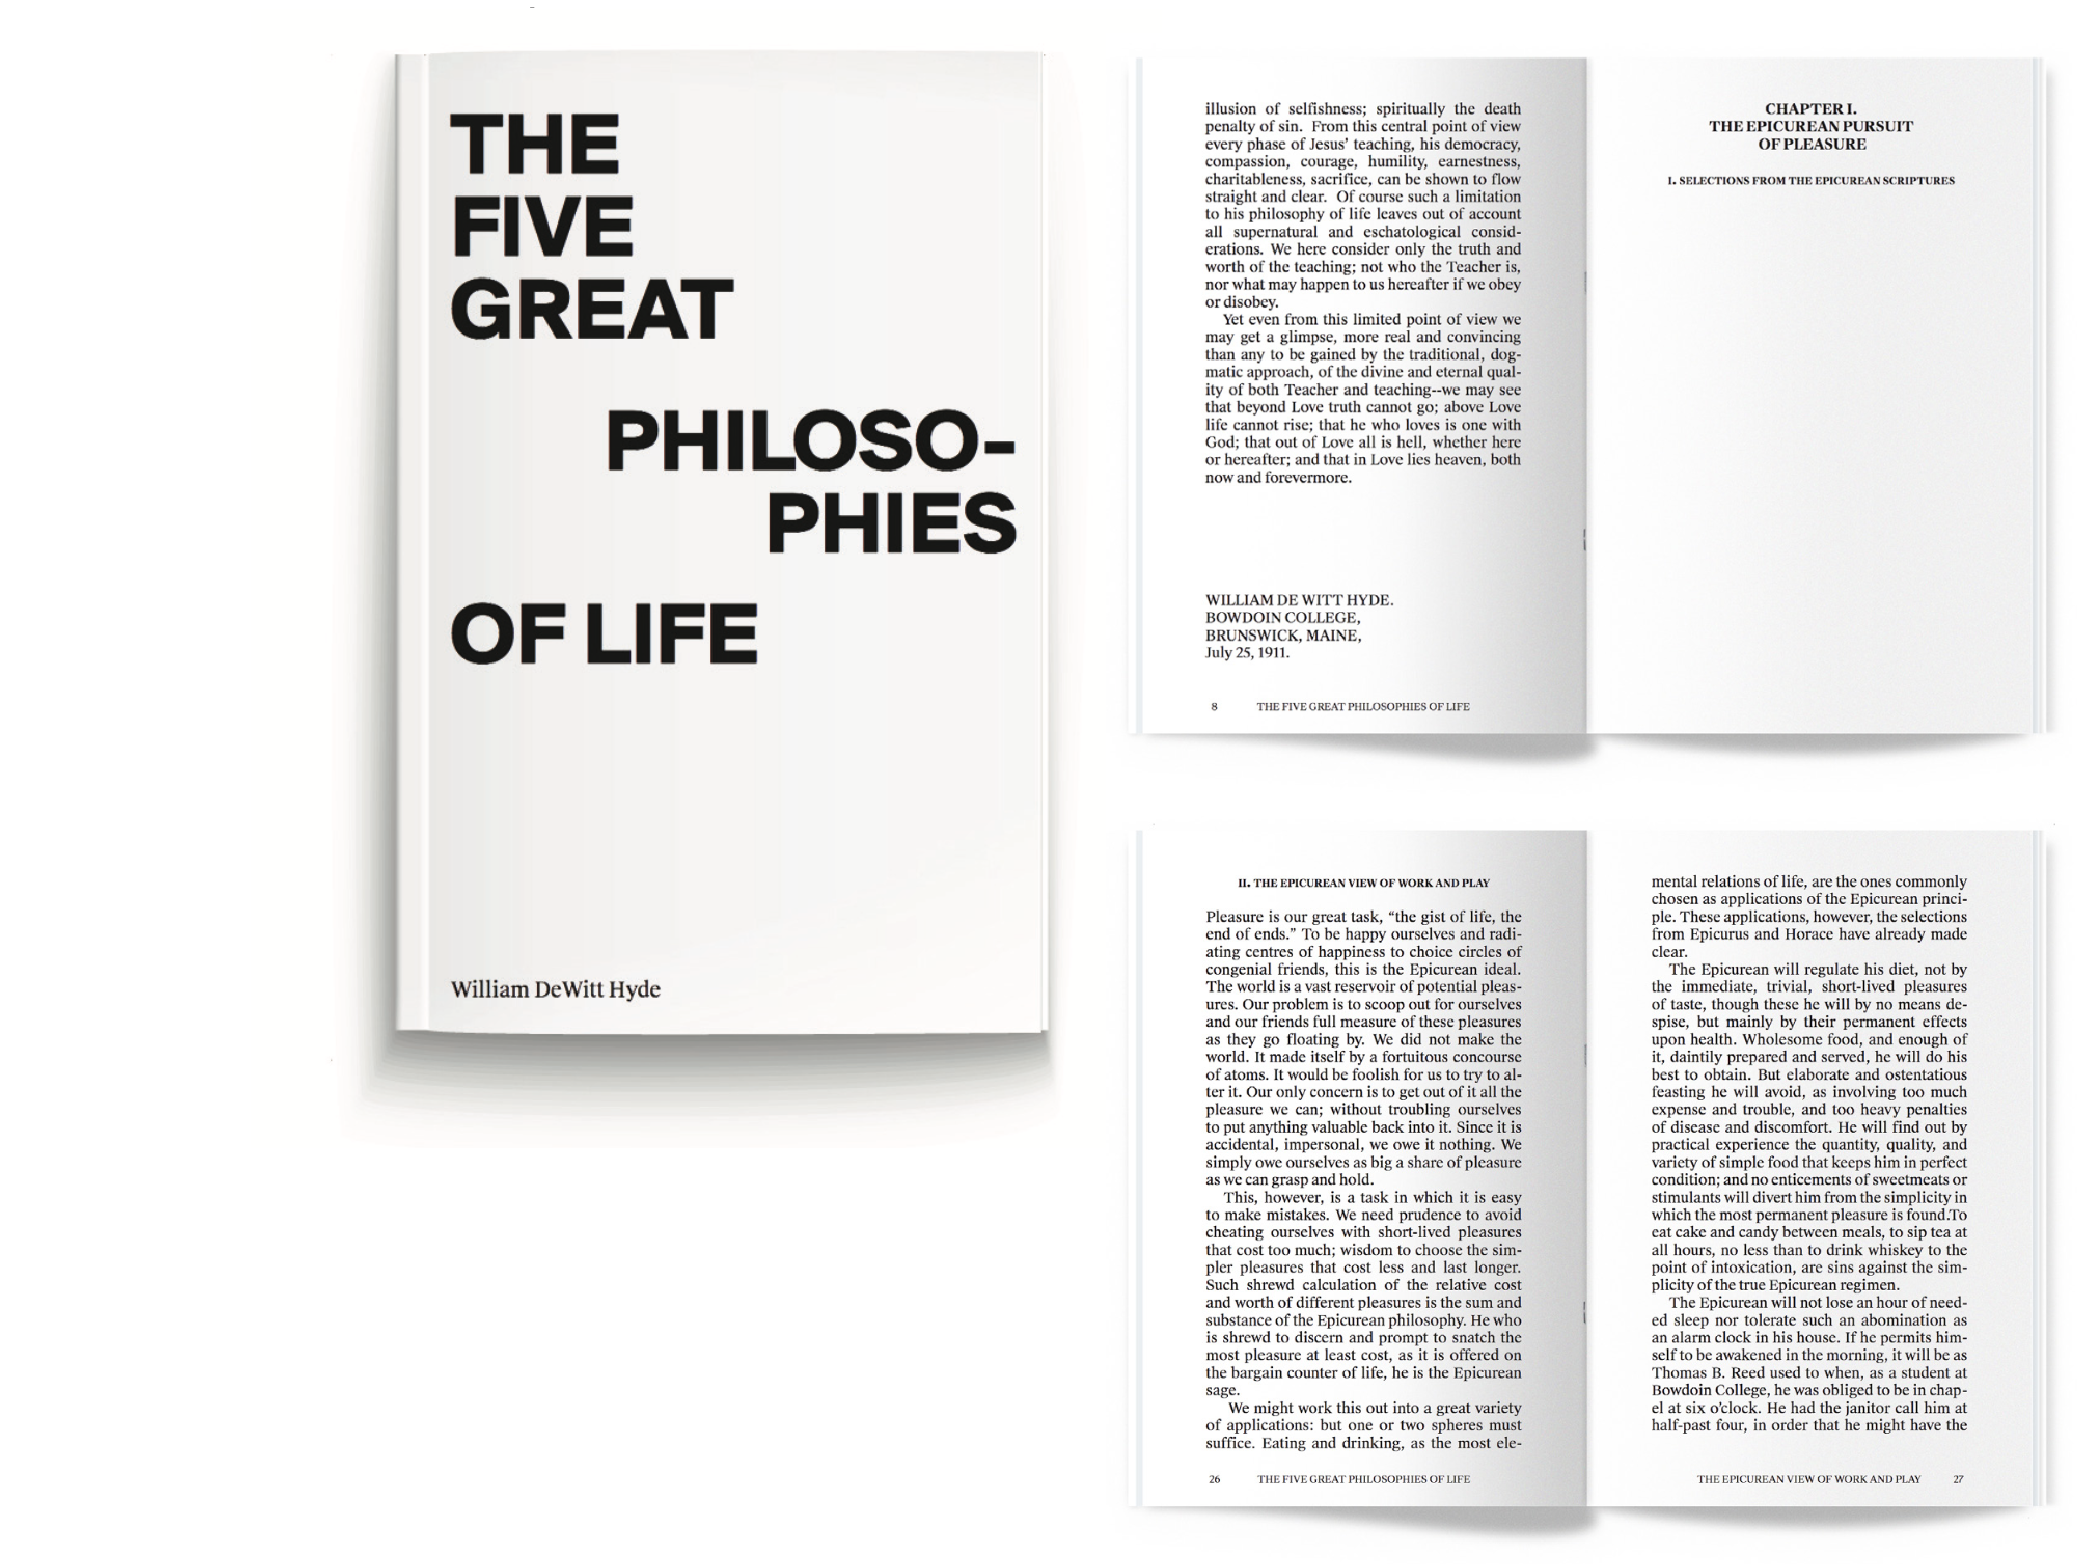 A typographic pocket-book design of The Five Great Philosophies of Life by William DeWitt Hyde. 2016.